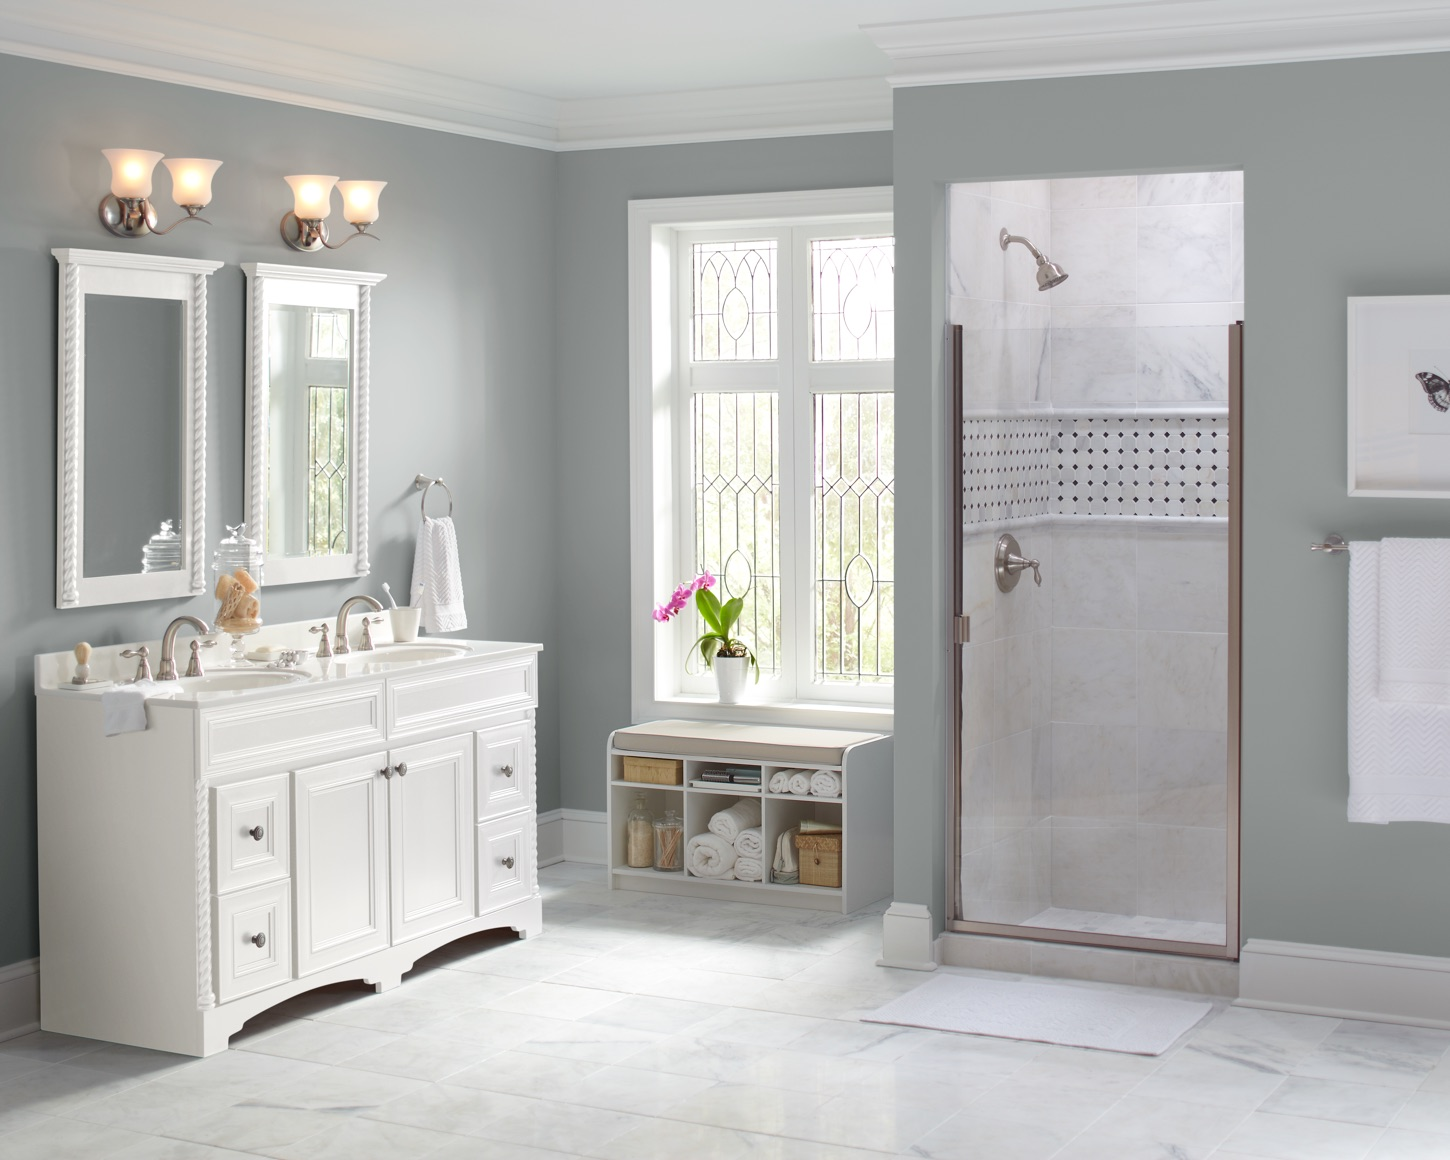 gray-wall-bathroom